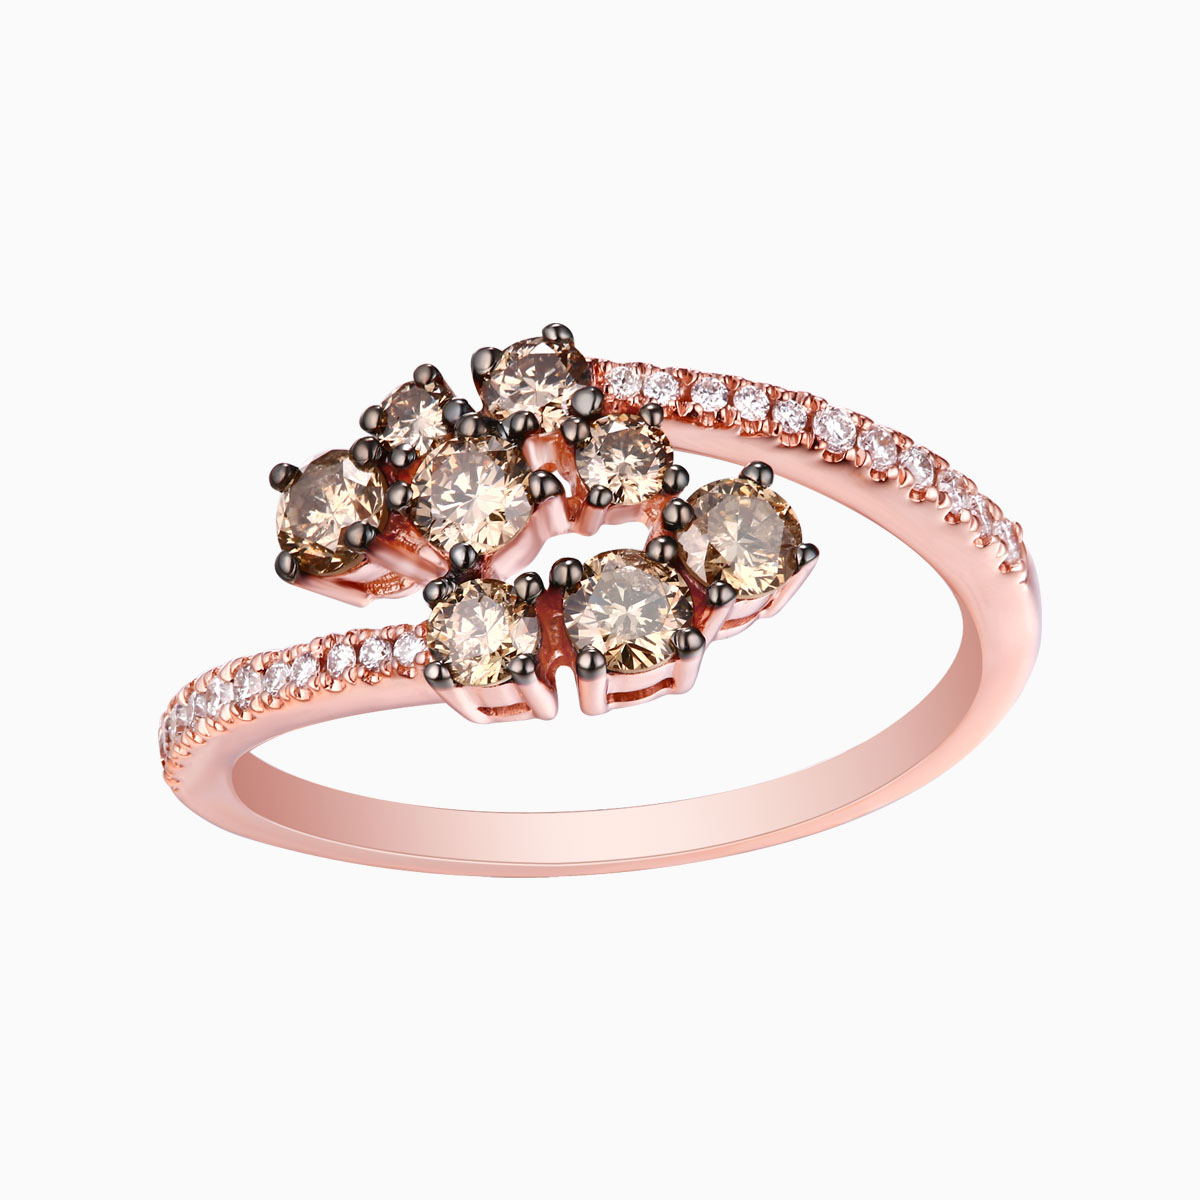 R25190BRN- 14K Rose Gold Diamond Ring, 0.87 TCW